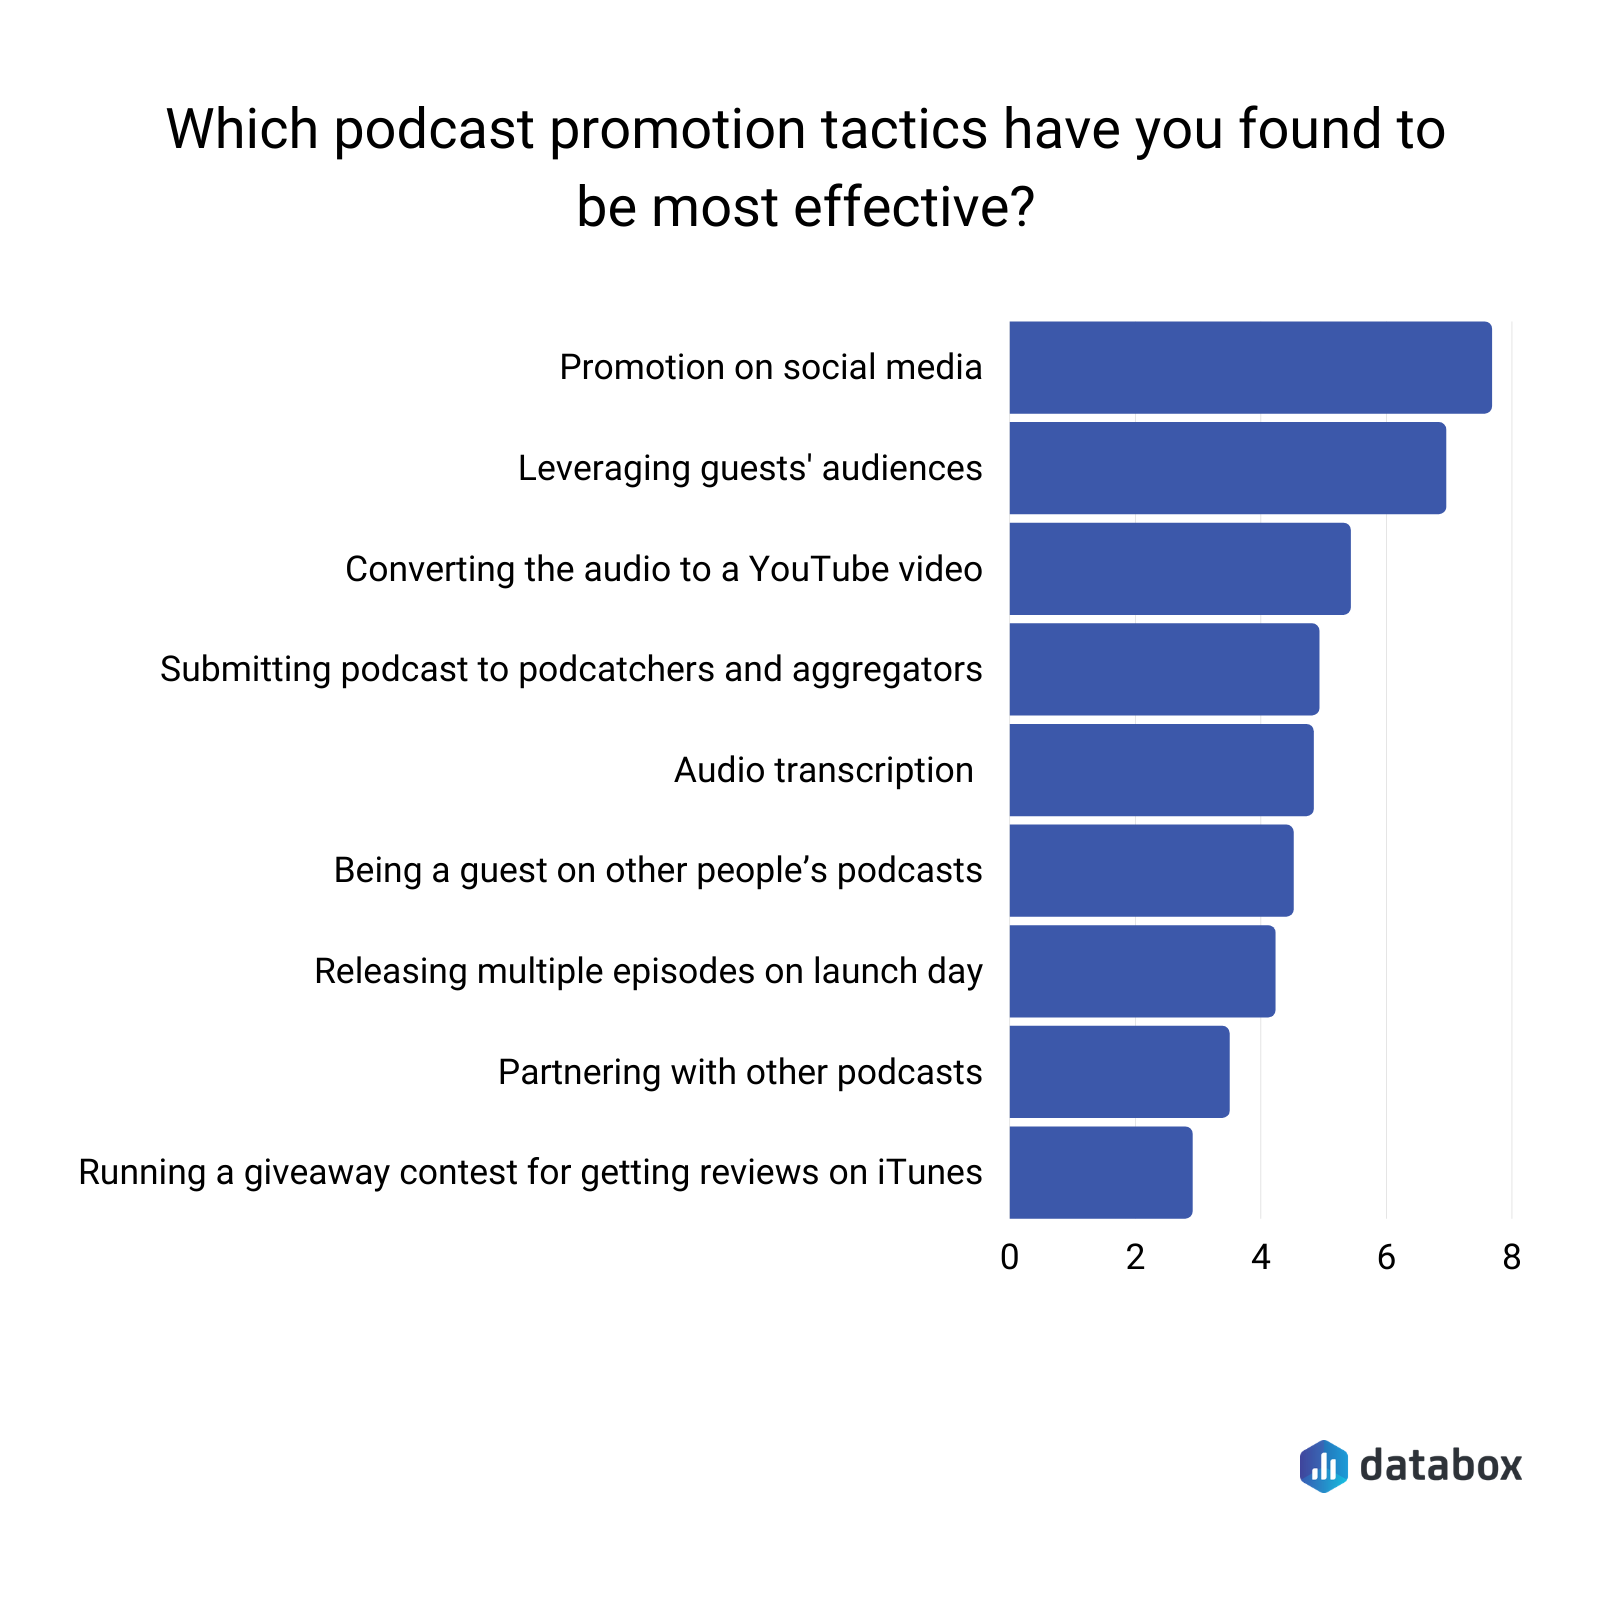 which podcast promo tactics have you found to be the most effective